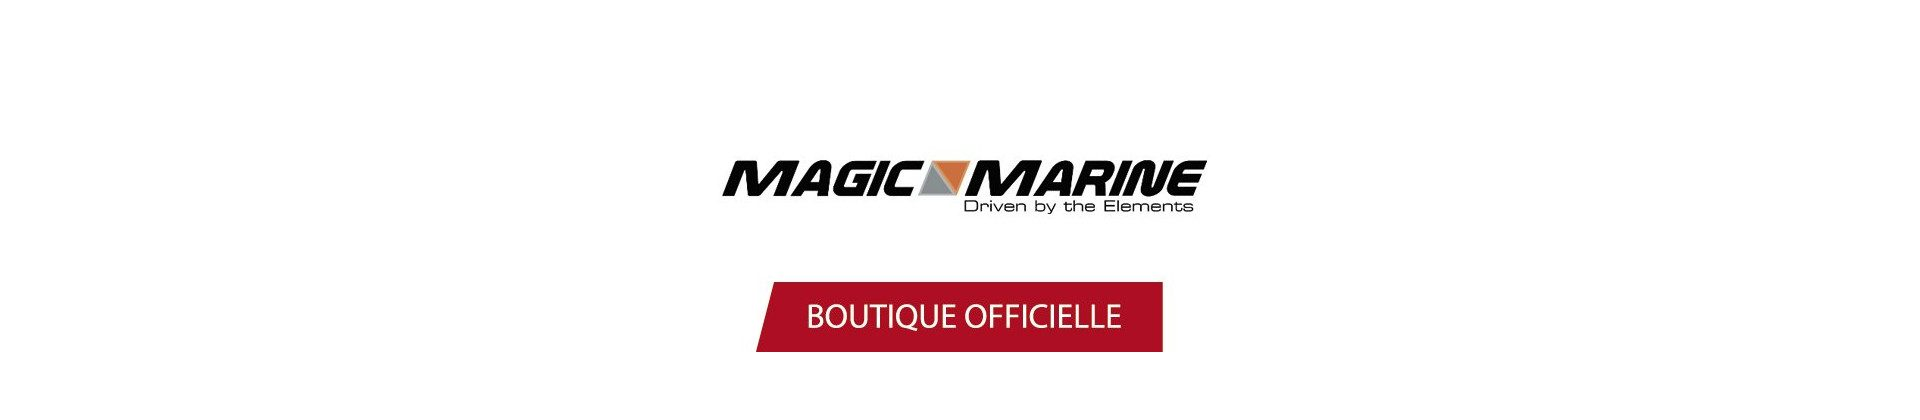 Vêtements marins Magic Marine